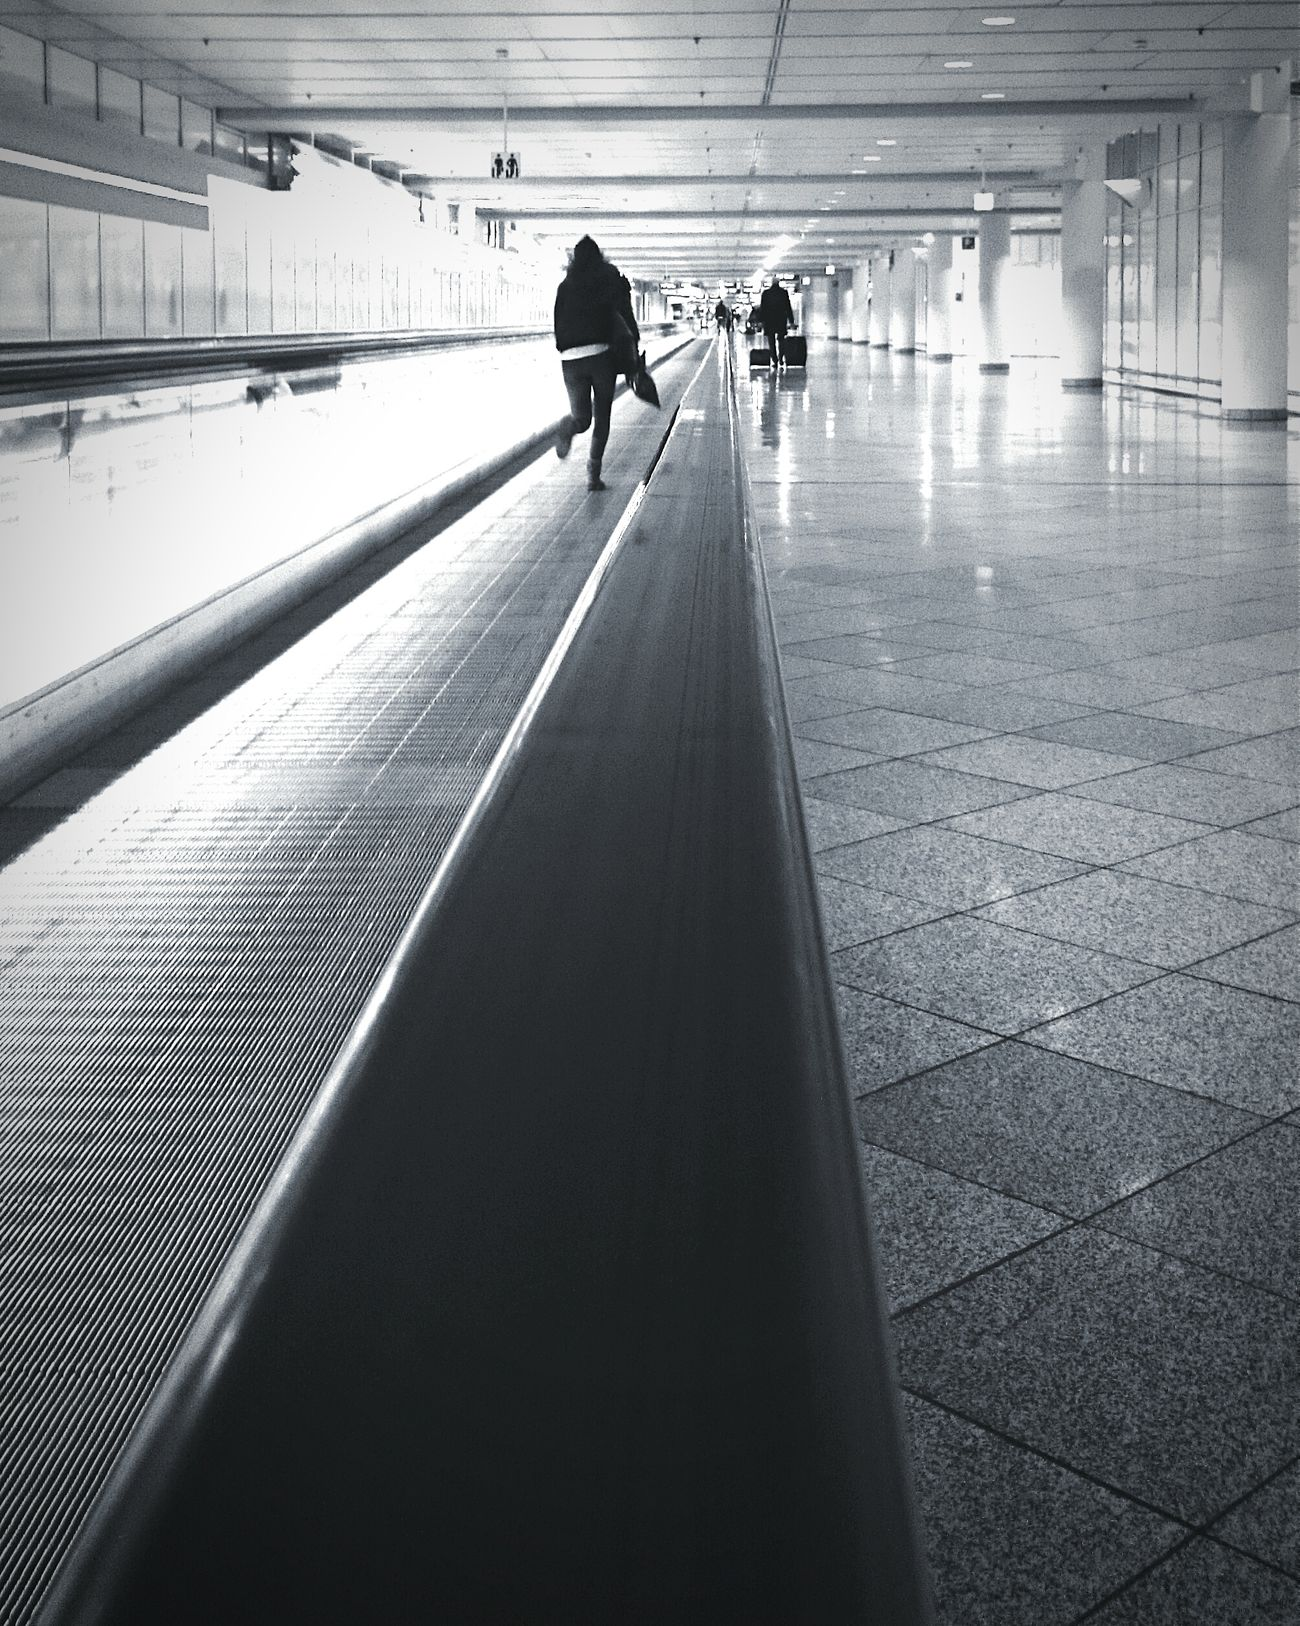 """""""Runway"""" On The Move Last-minute Flight Running Late Airport Architecture_bw Saturdaysong_eyeemchallenge RePicture Travel In The Terminal The Traveler - 2015 EyeEm Awards Alternative Fitness Let's Go. Together."""